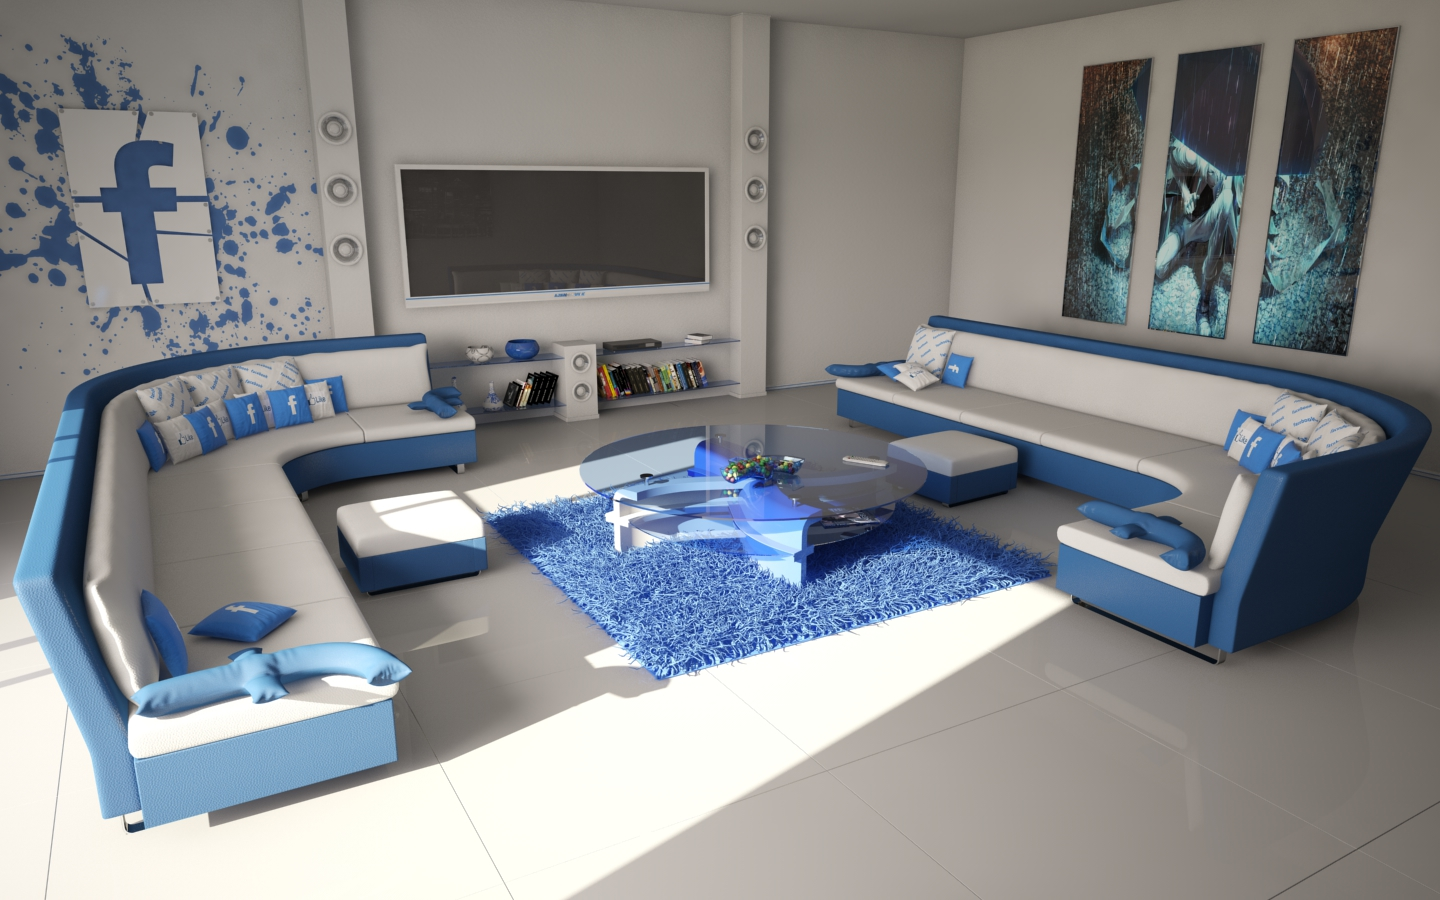 Facebook living room by slographic